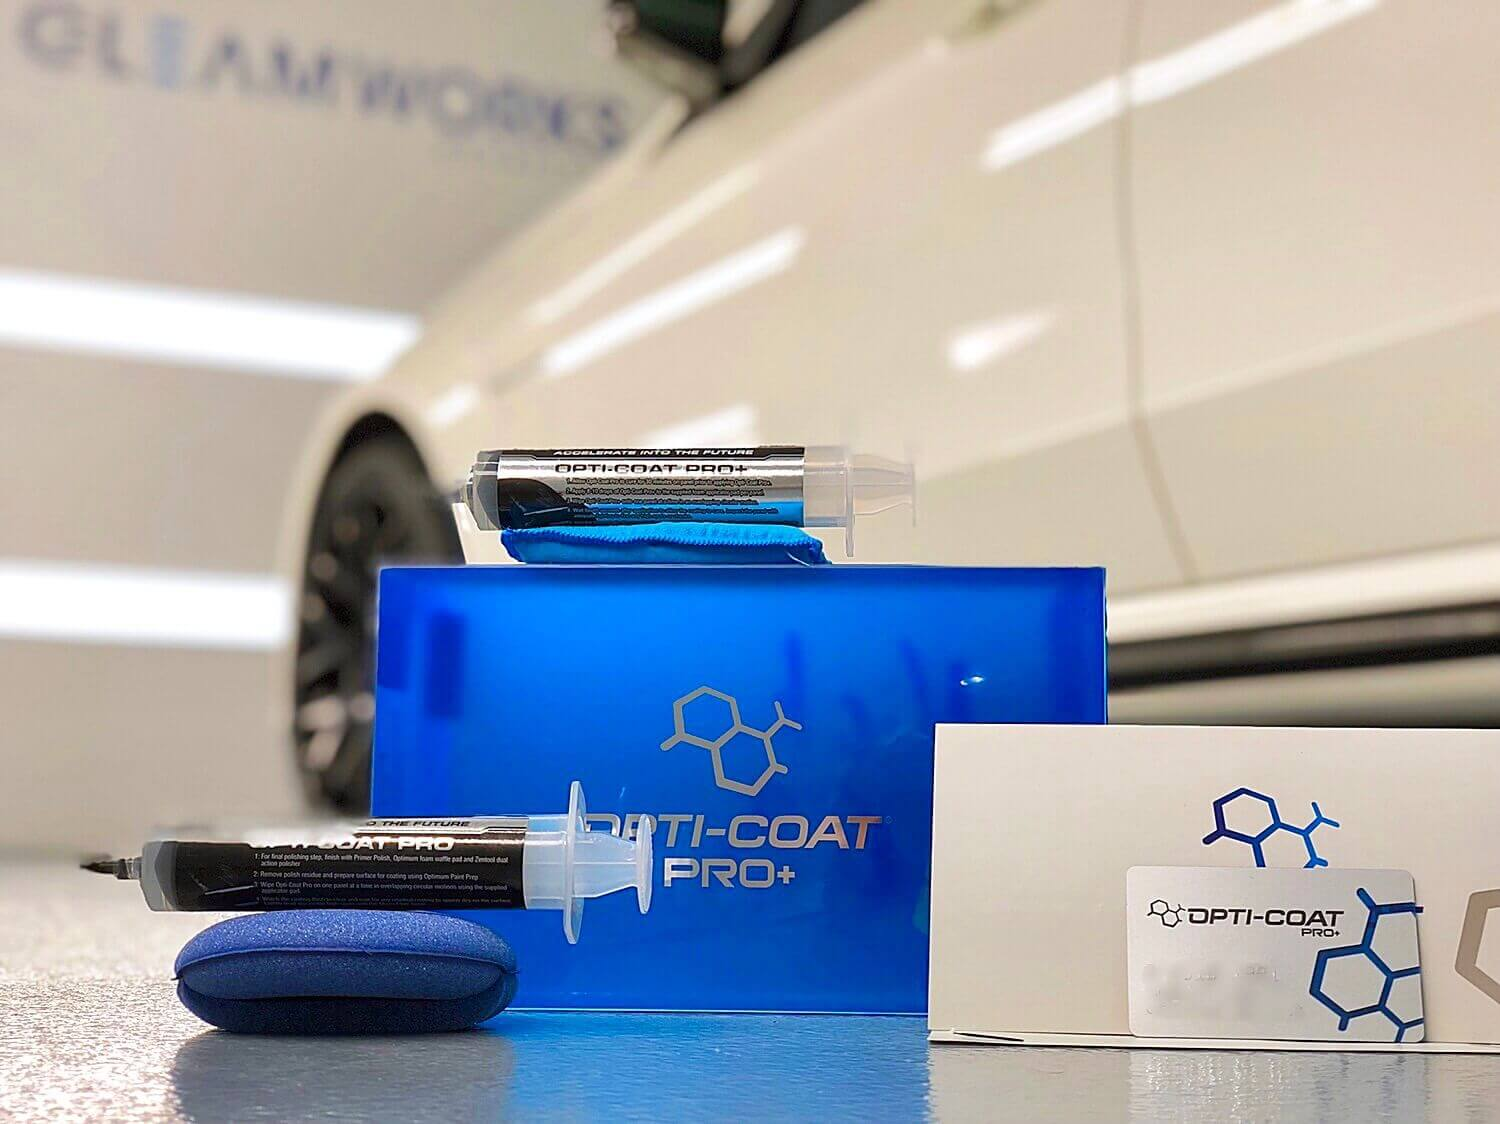 Opti Coat Ceramic Coating Pro Kit Available At Gleamworks Detailing in Vancouver